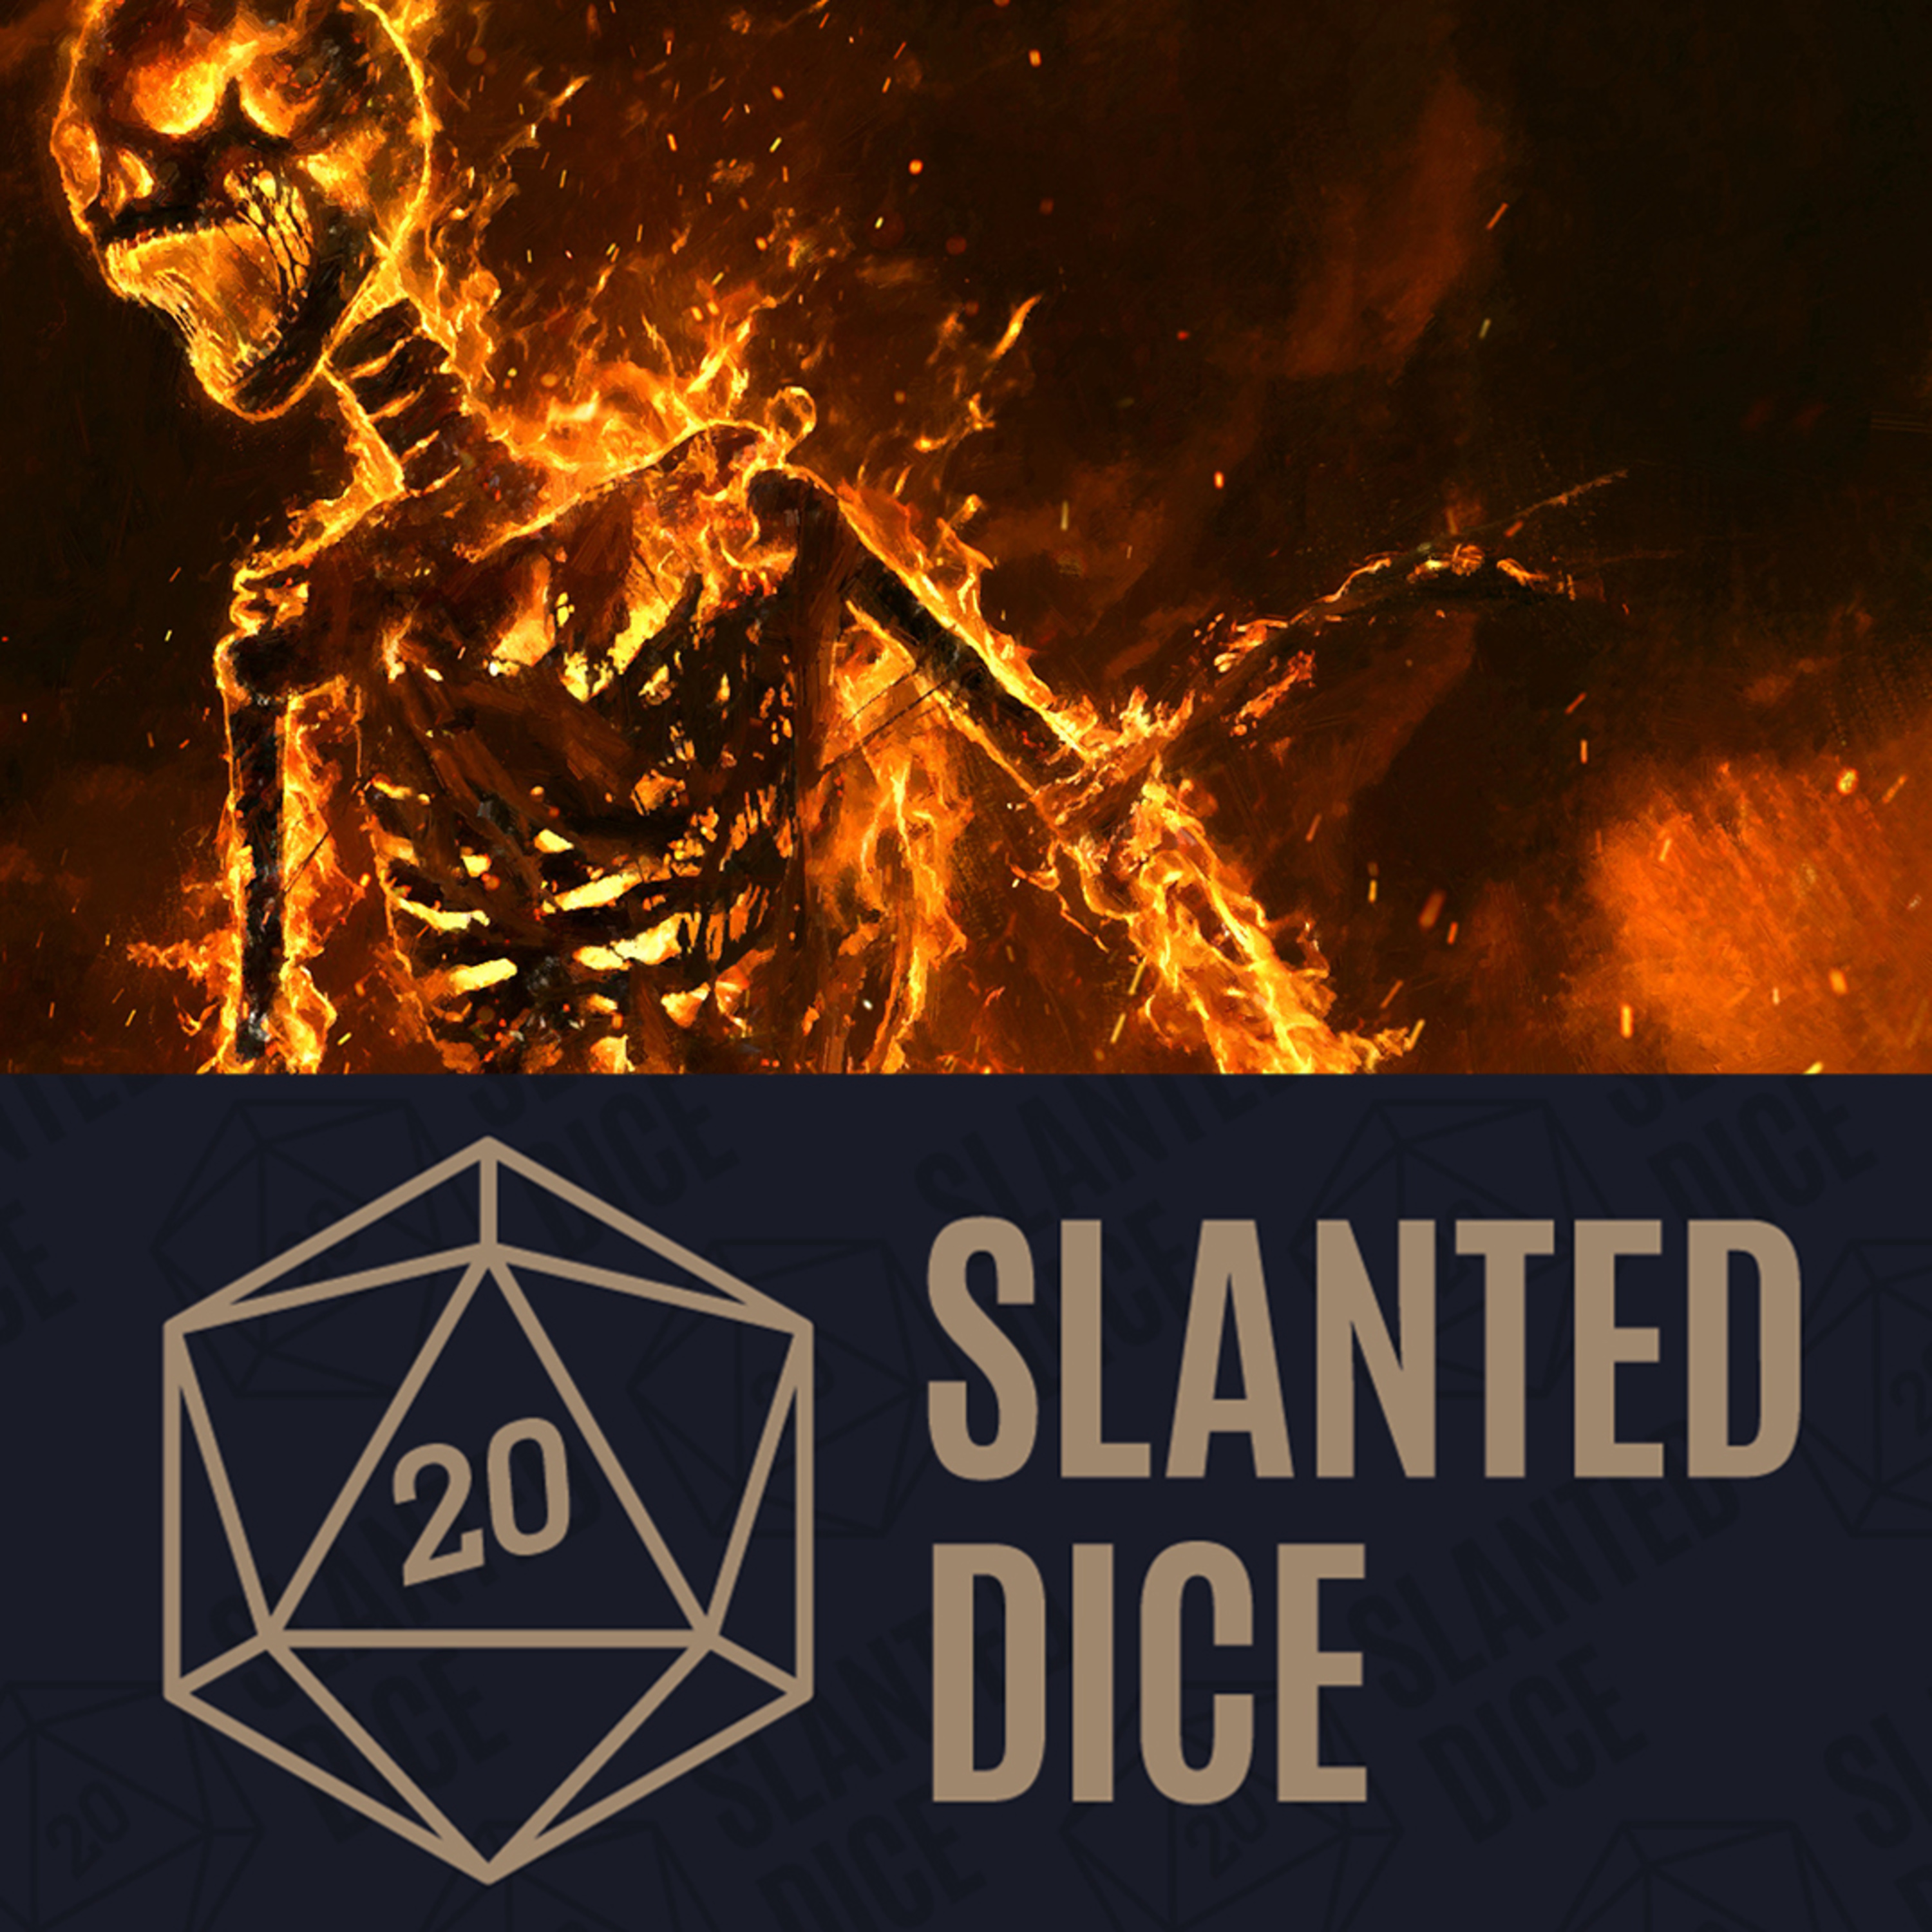 Great Balls of Fire   Episode 10 - Slanted Dice